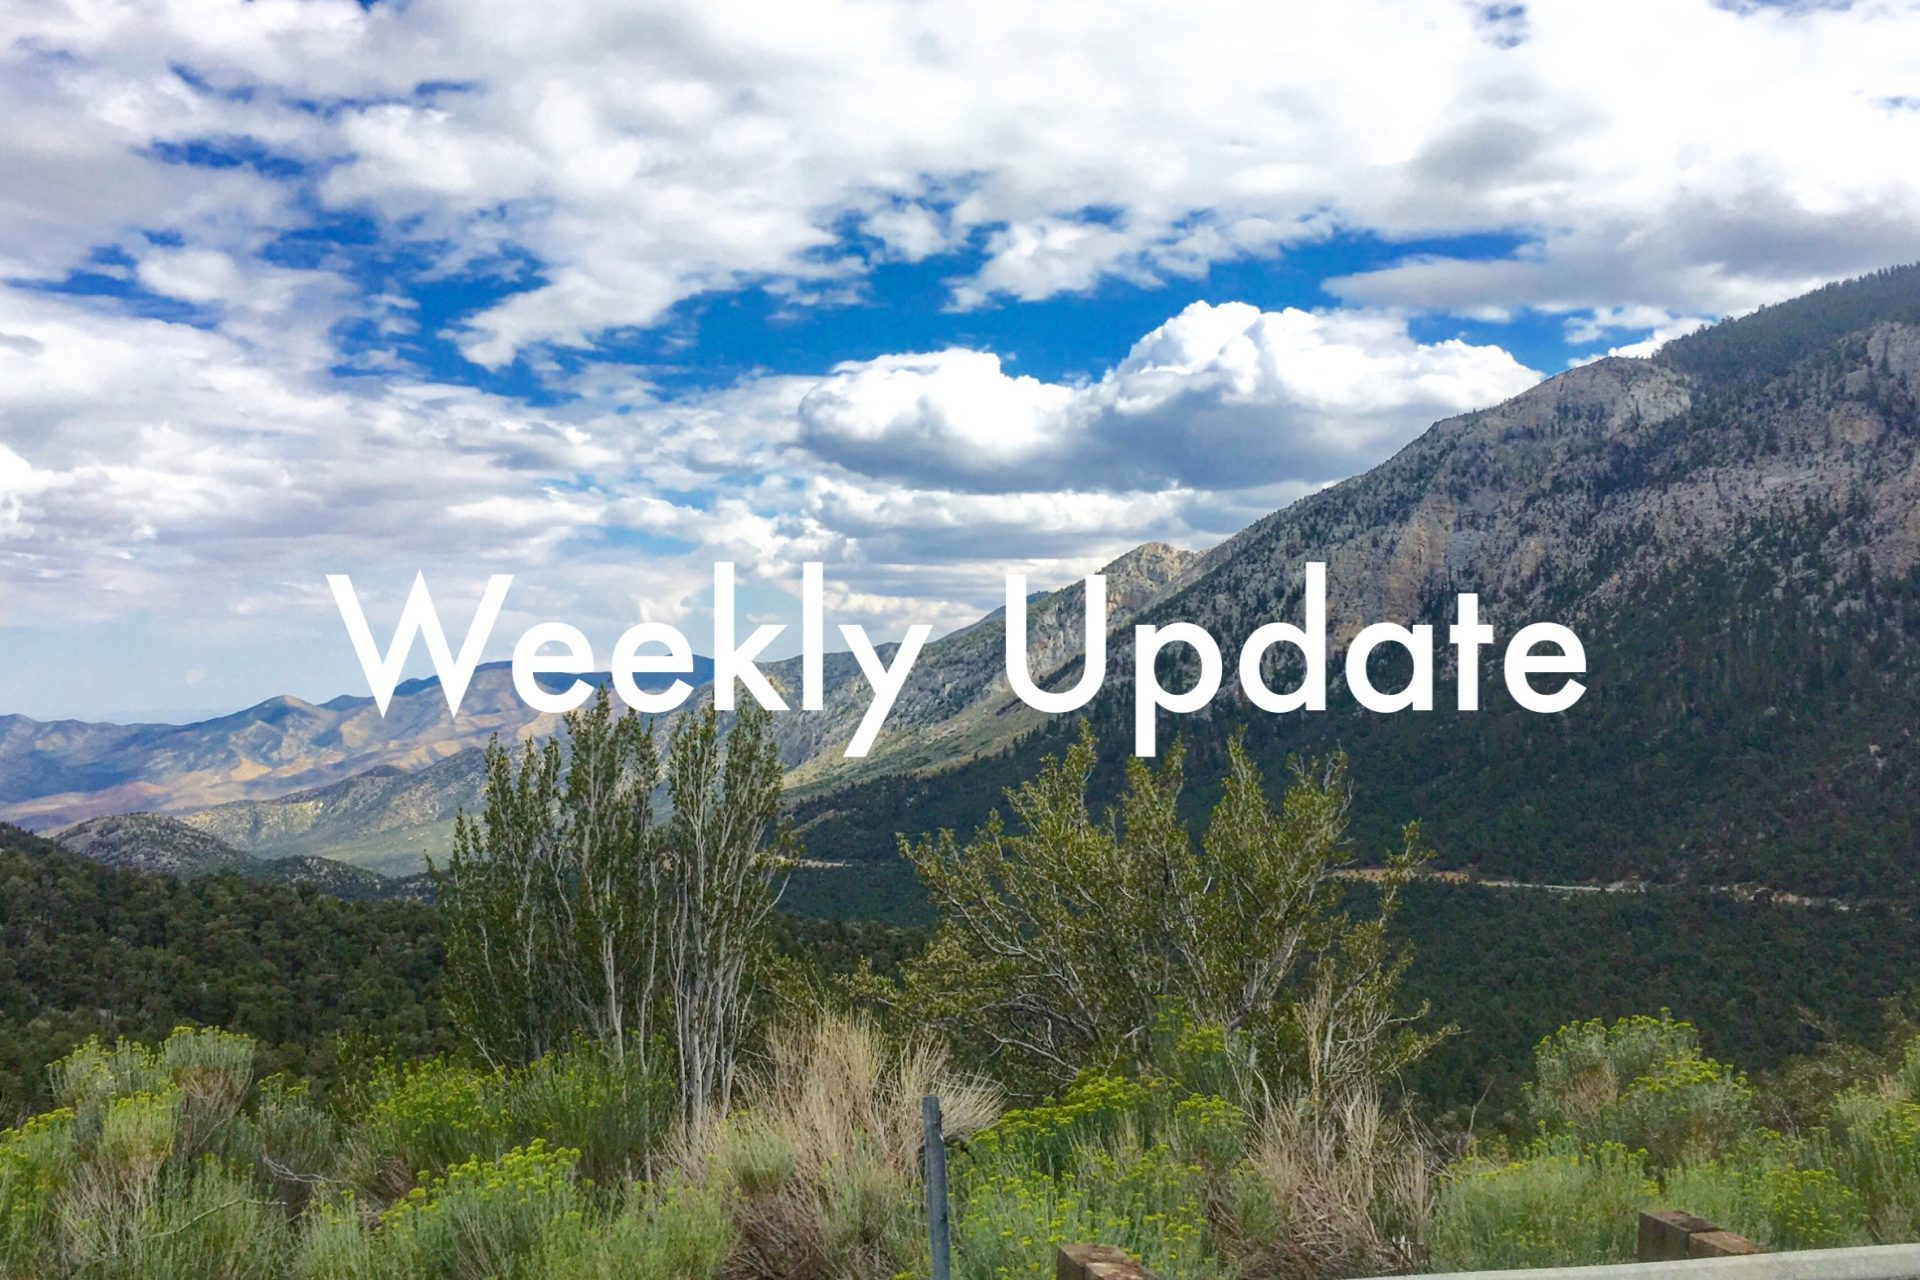 Weekly Update in white text over an expansive mountain vista with highway 158 and puffy clouds in the distance